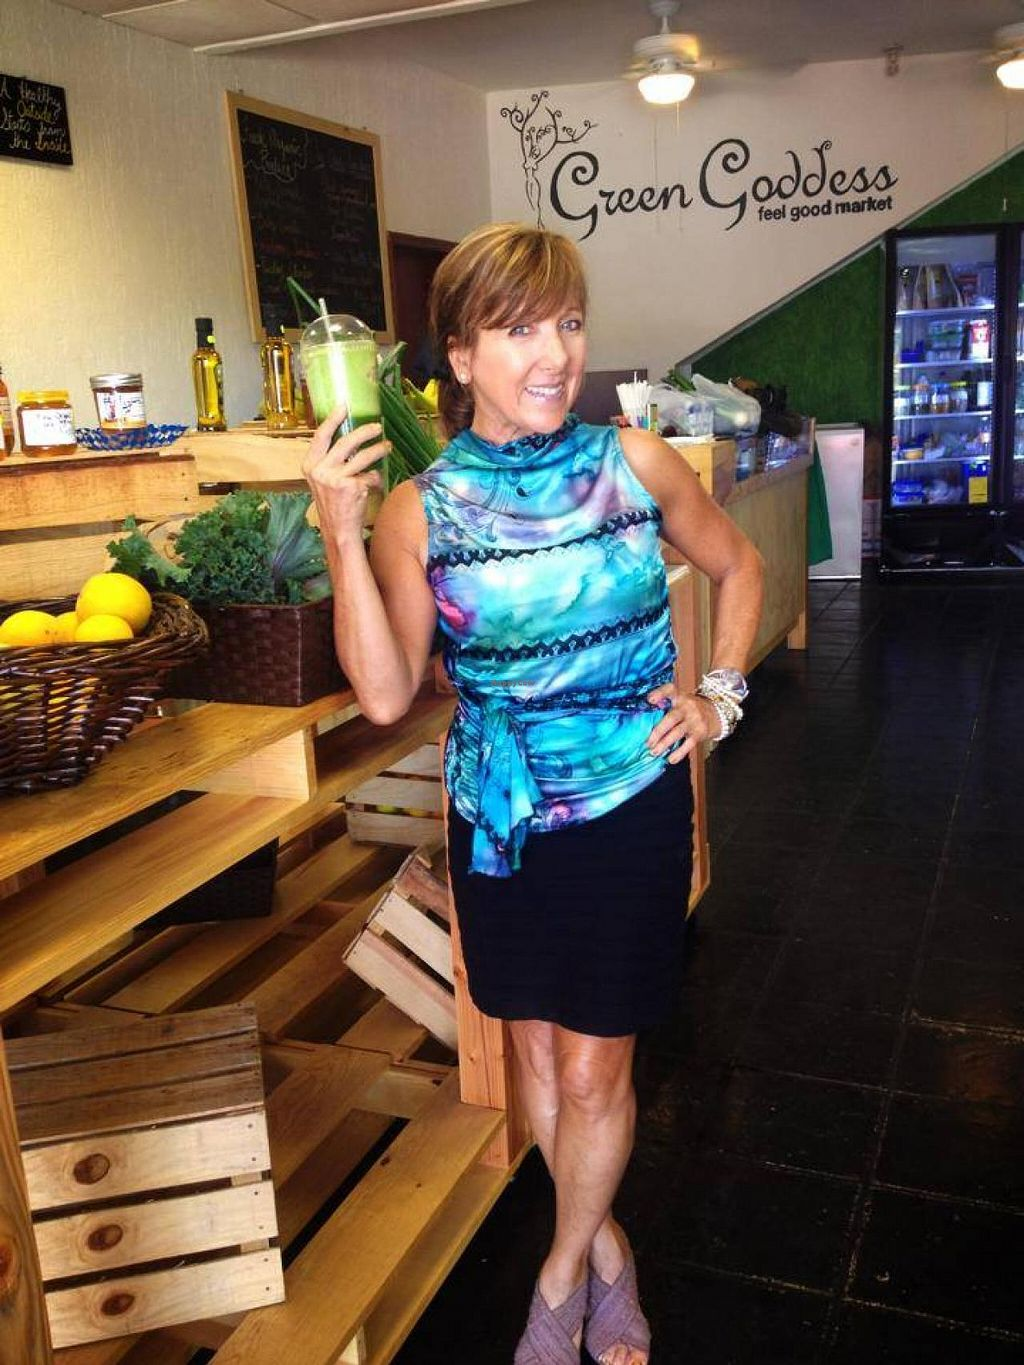 """Photo of CLOSED: Green Goddess Feel Good Market  by <a href=""""/members/profile/JoannaCoonFoxT"""">JoannaCoonFoxT</a> <br/>customer of the week! <br/> April 5, 2014  - <a href='/contact/abuse/image/46341/67090'>Report</a>"""